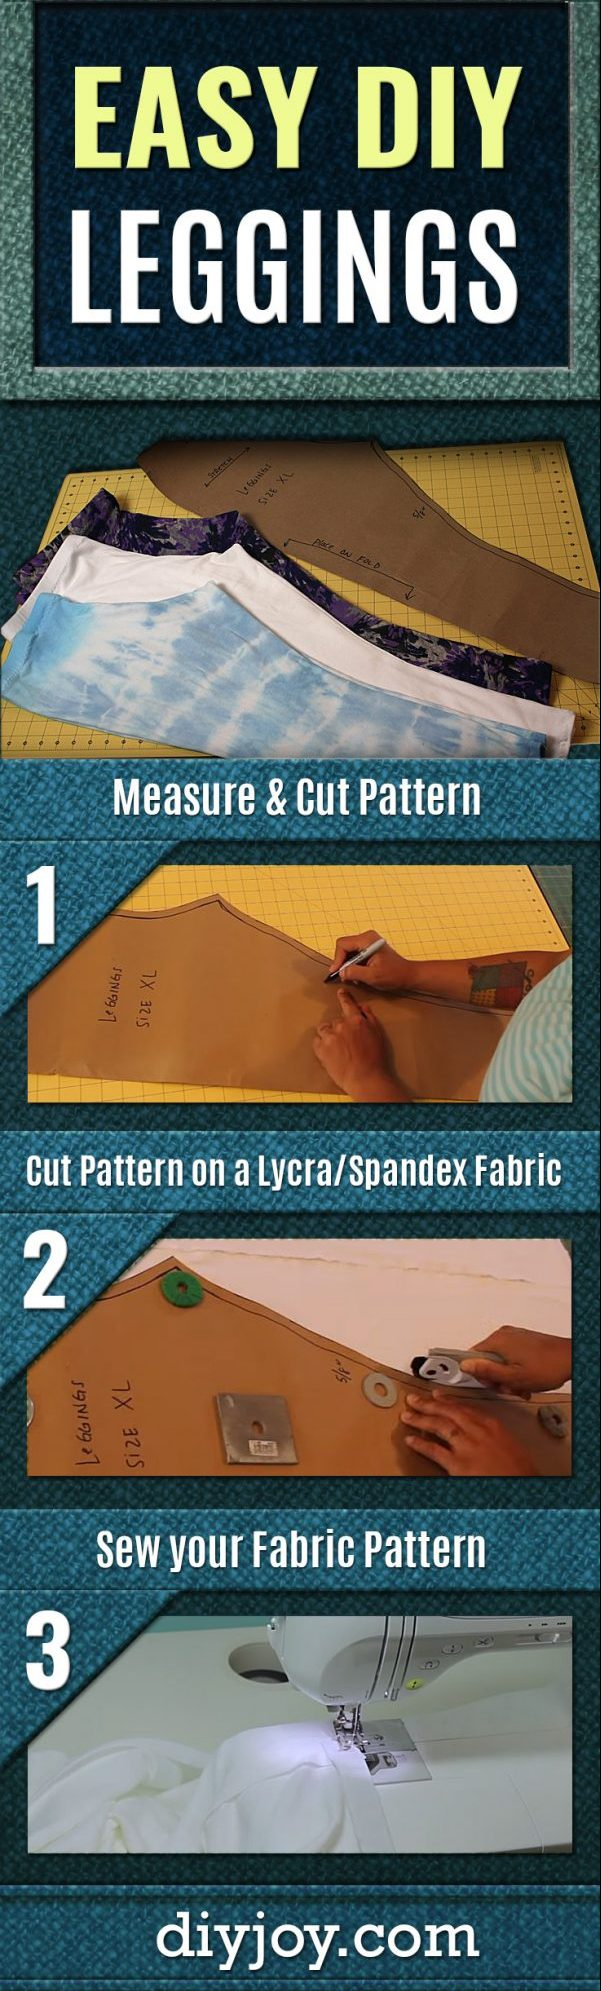 How to Make Leggings With Easy Step by Step Tutorial